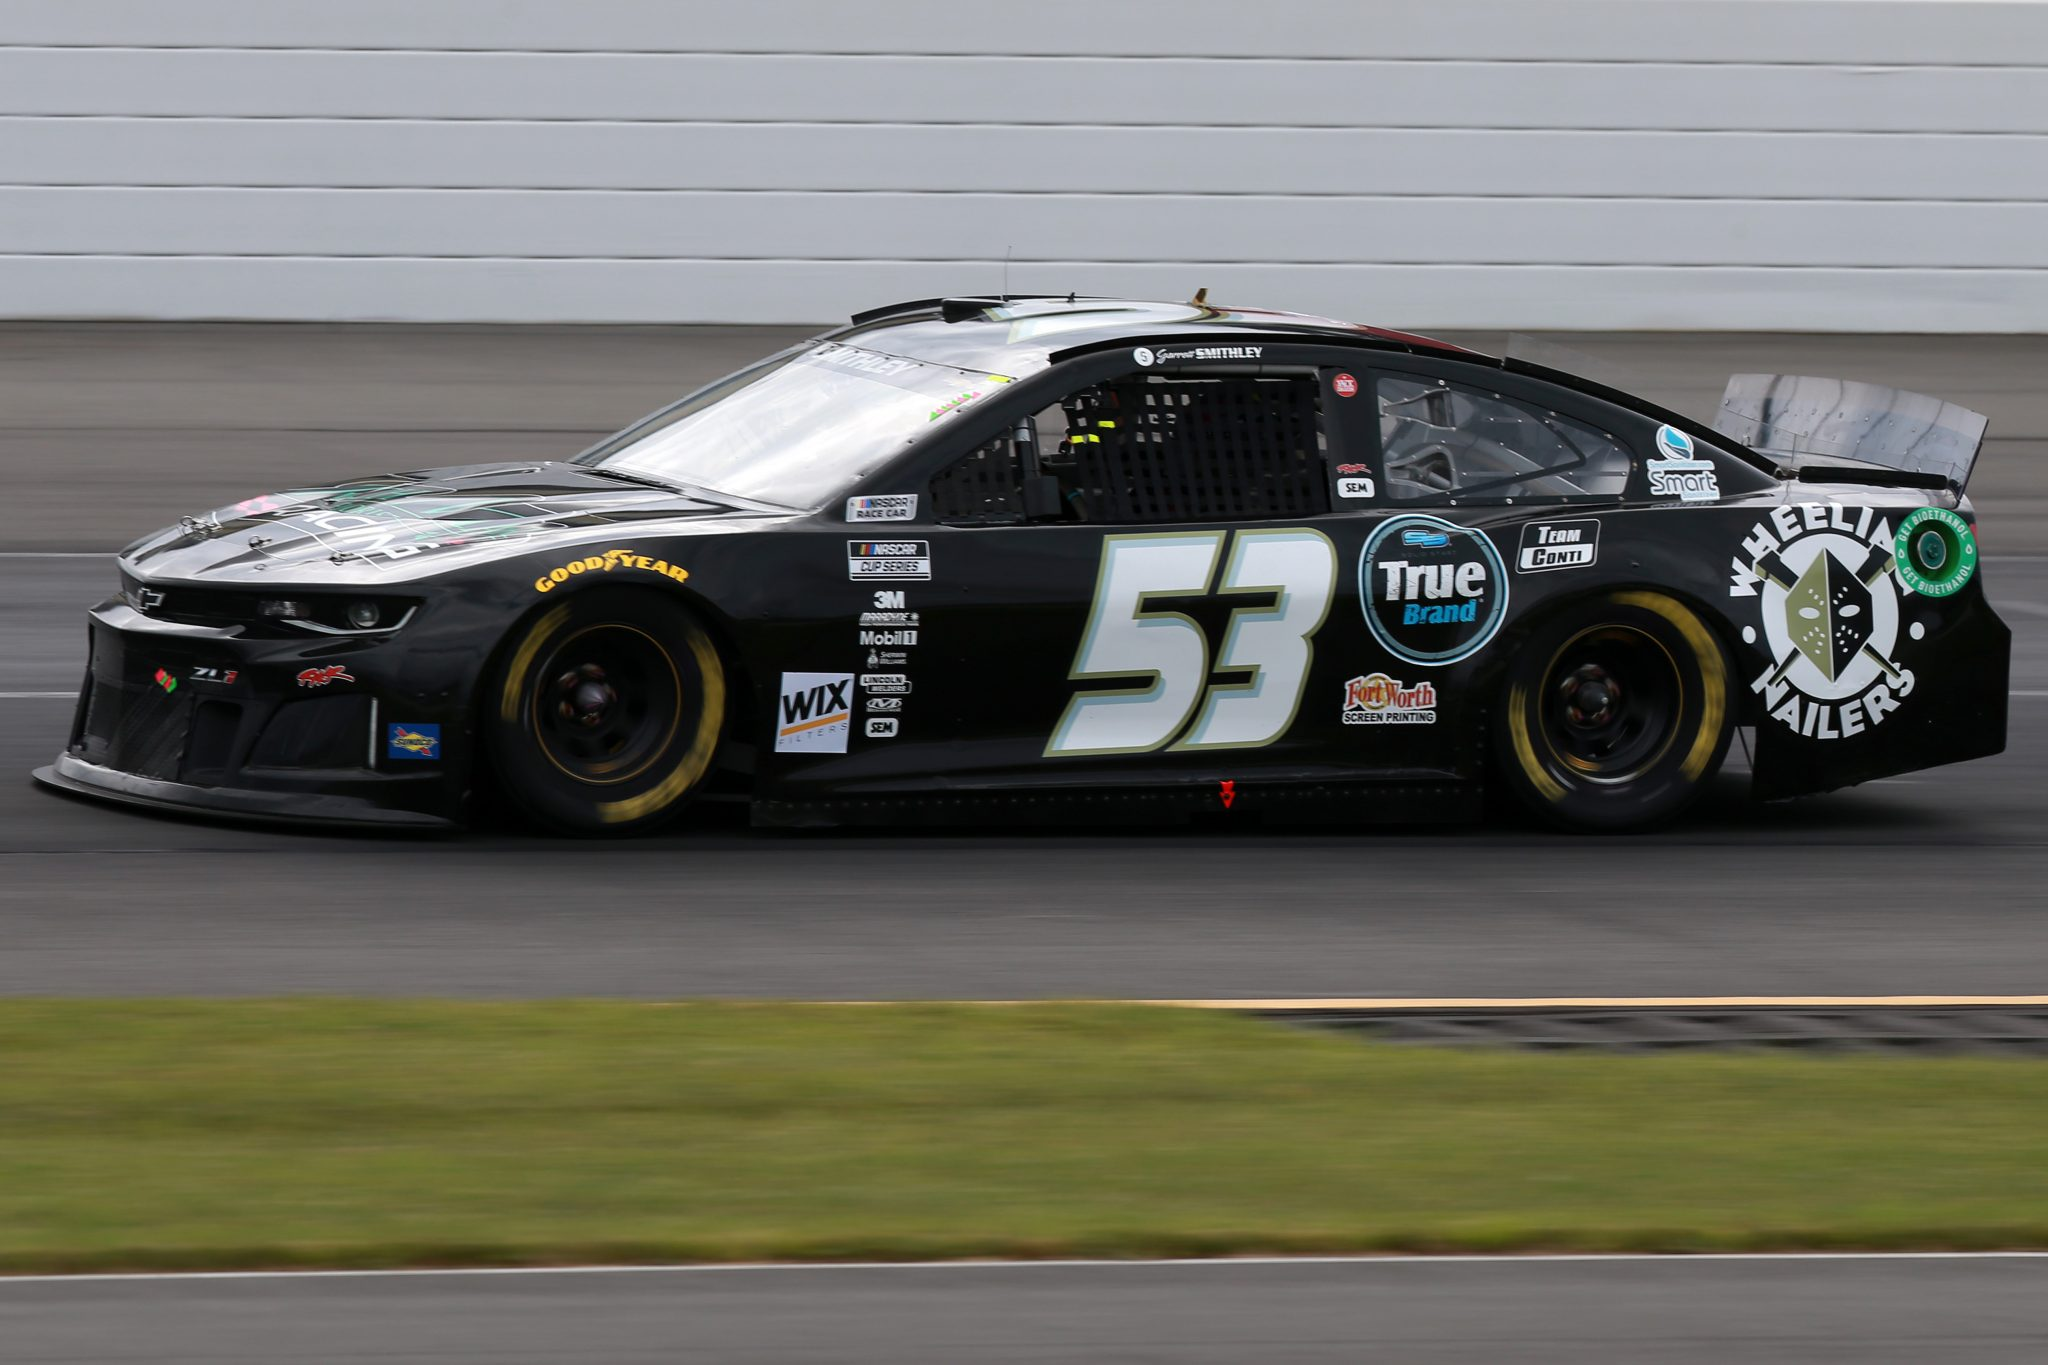 LONG POND, PENNSYLVANIA - JUNE 26: Garrett Smithley, driver of the #53 Chevrolet, drives during the NASCAR Cup Series Pocono Organics CBD 325 at Pocono Raceway on June 26, 2021 in Long Pond, Pennsylvania. (Photo by Sean Gardner/Getty Images) | Getty Images